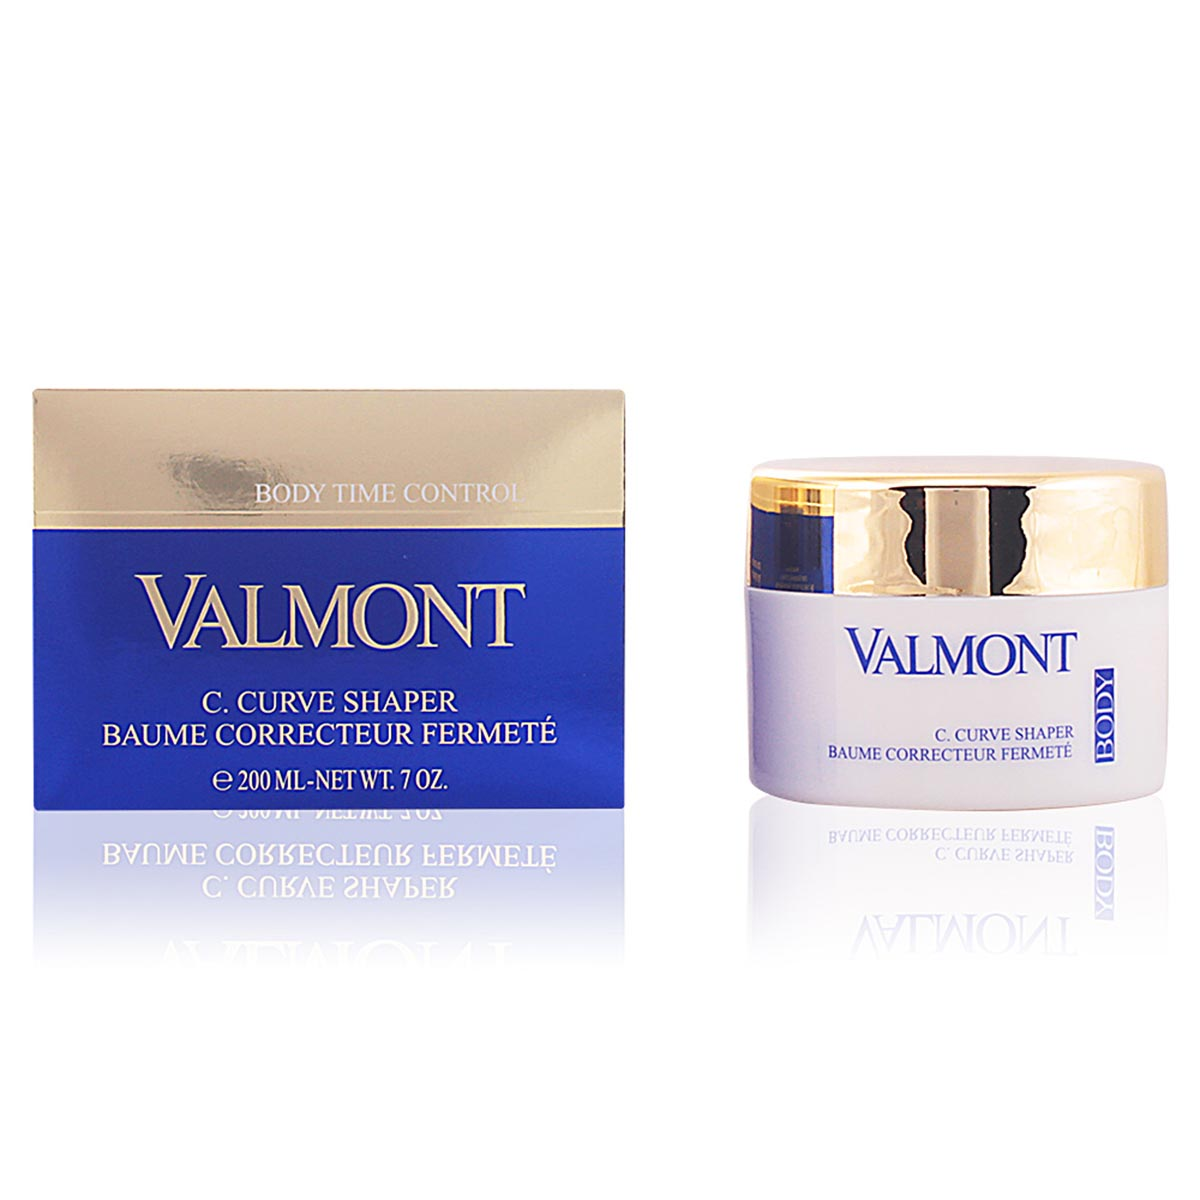 Valmont body time control c curve shaper baume 200ml